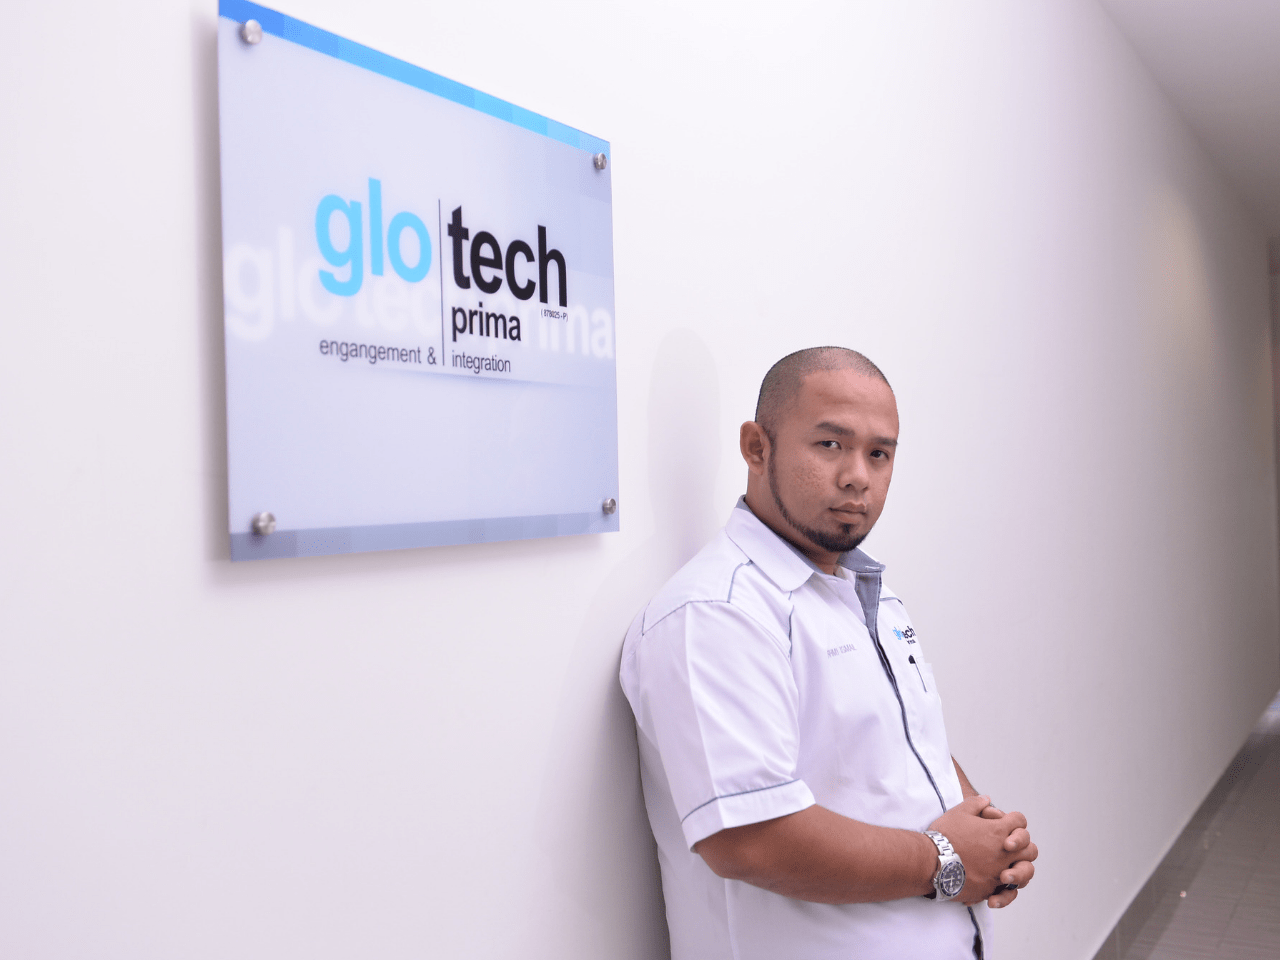 The MD of Glotech Prima Took a Huge Risk, But It All Paid Off As He Scored A Great Victory In Just 1 Year